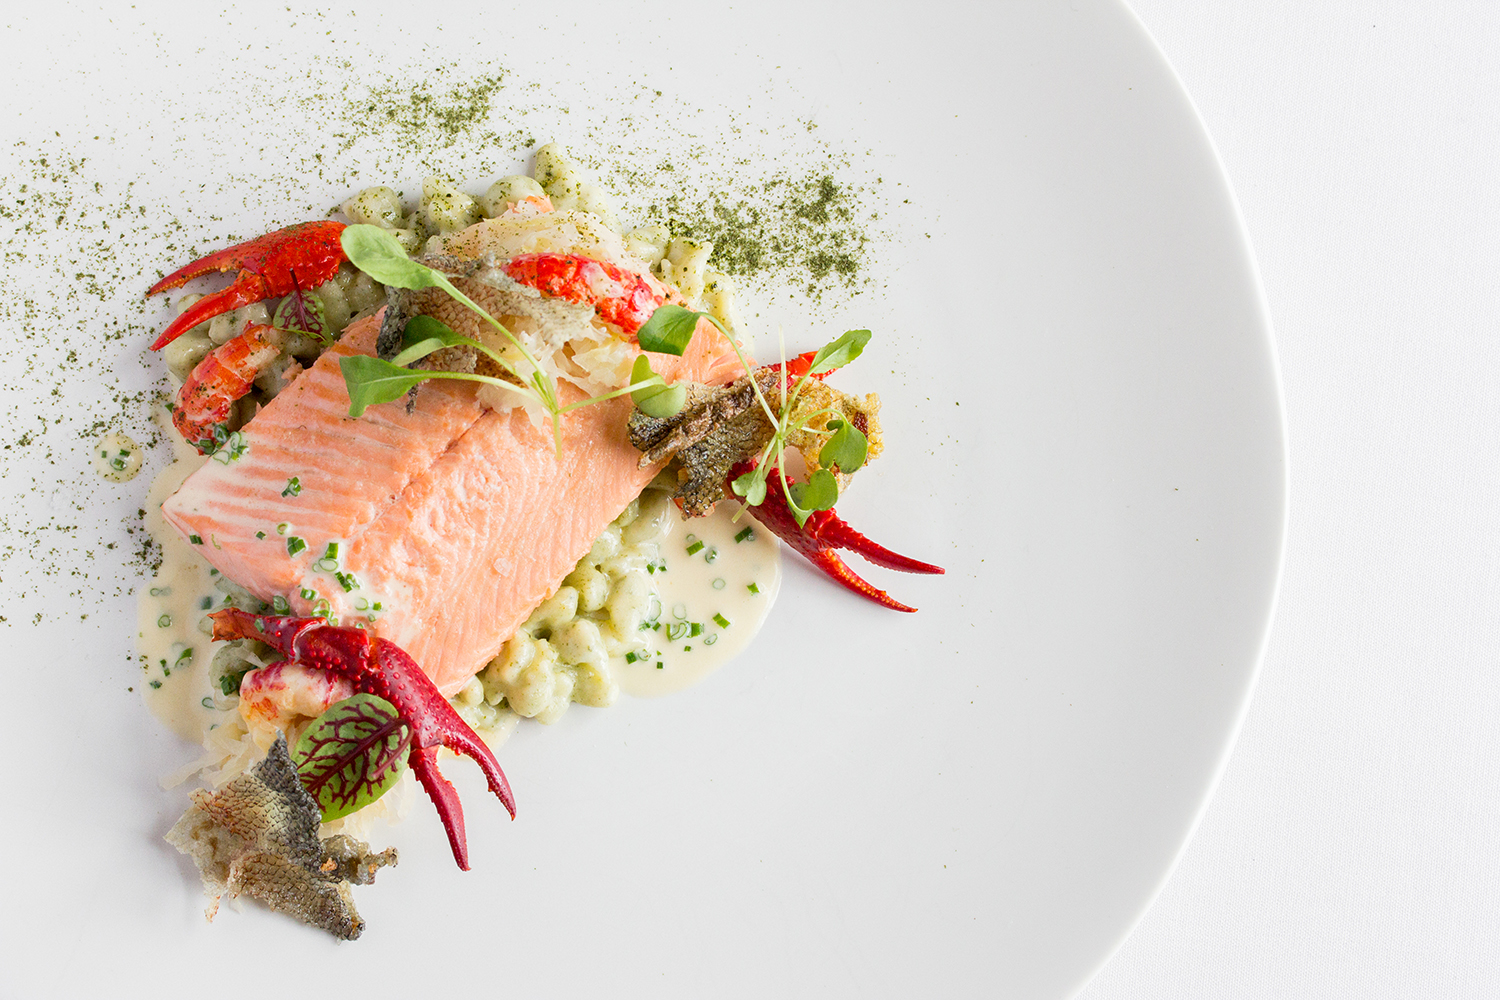 Taste Alsace Trout and Cabbage Main on White Plate at Auberge du Pommier